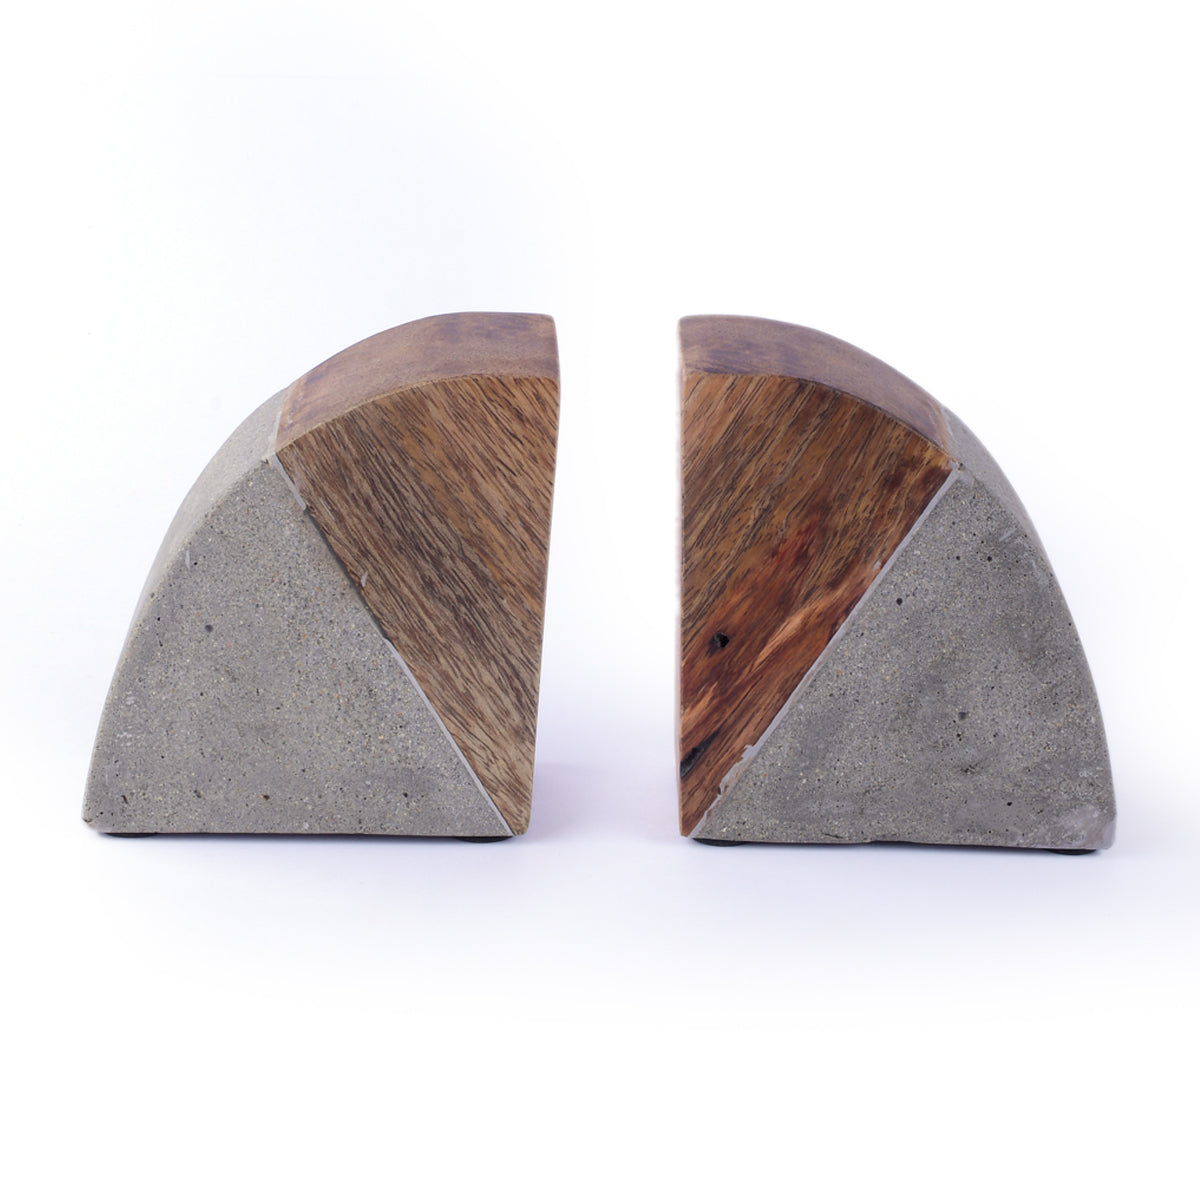 Cement Wood Bookends Set of 2